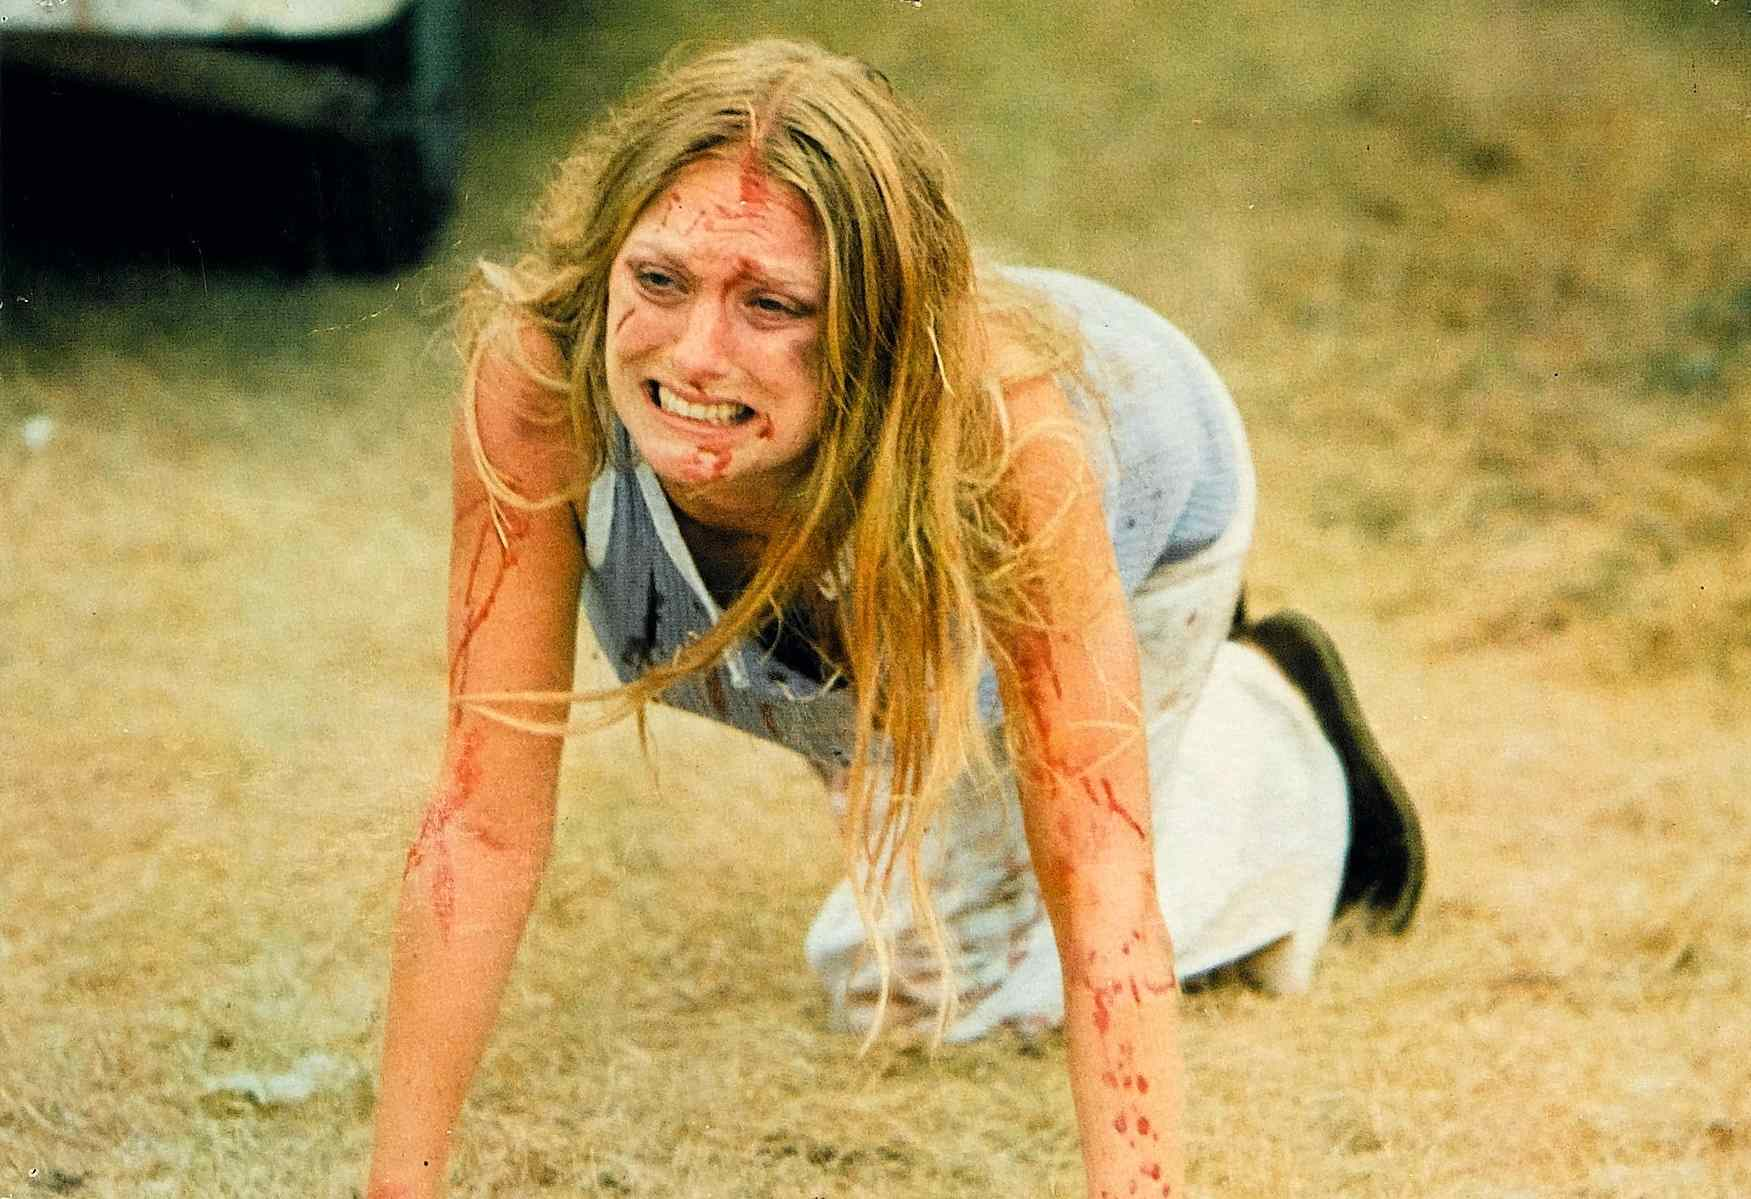 Sally (Marilyn Burns) in Tobe Hooper's 1974 grindhouse masterpiece The Texas Chainsaw Massacre.